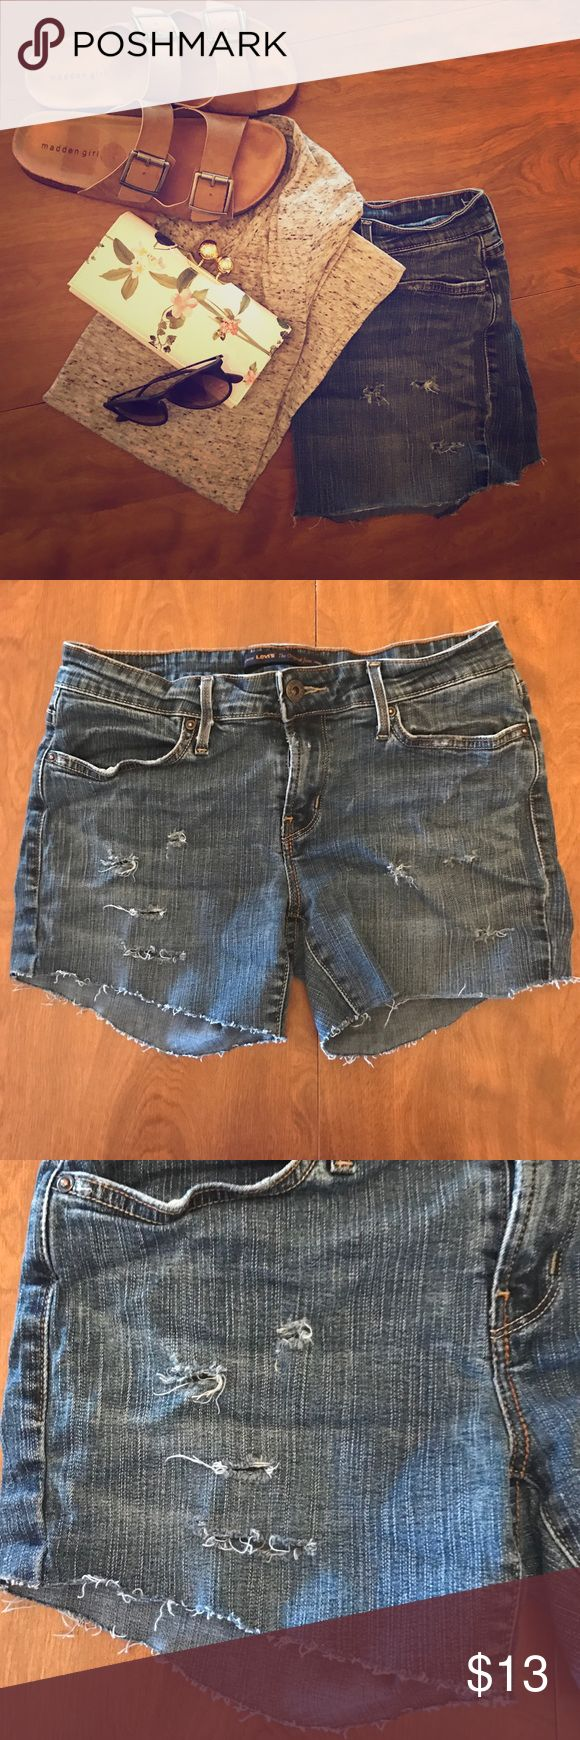 """Destroyed Levi's Shorts **HOMEMADE** I enjoy making shorts out of my old jeans for myself and others, so this is pair I had extra. These were super cute Leggings in size 8 (also feels like a 6) that I have cut and made into shorts. These shorts have a 3"""" inseam, and are of stretchy material. They are super cute, but I have way to many. All offers accepted. Levi's Shorts Jean Shorts"""